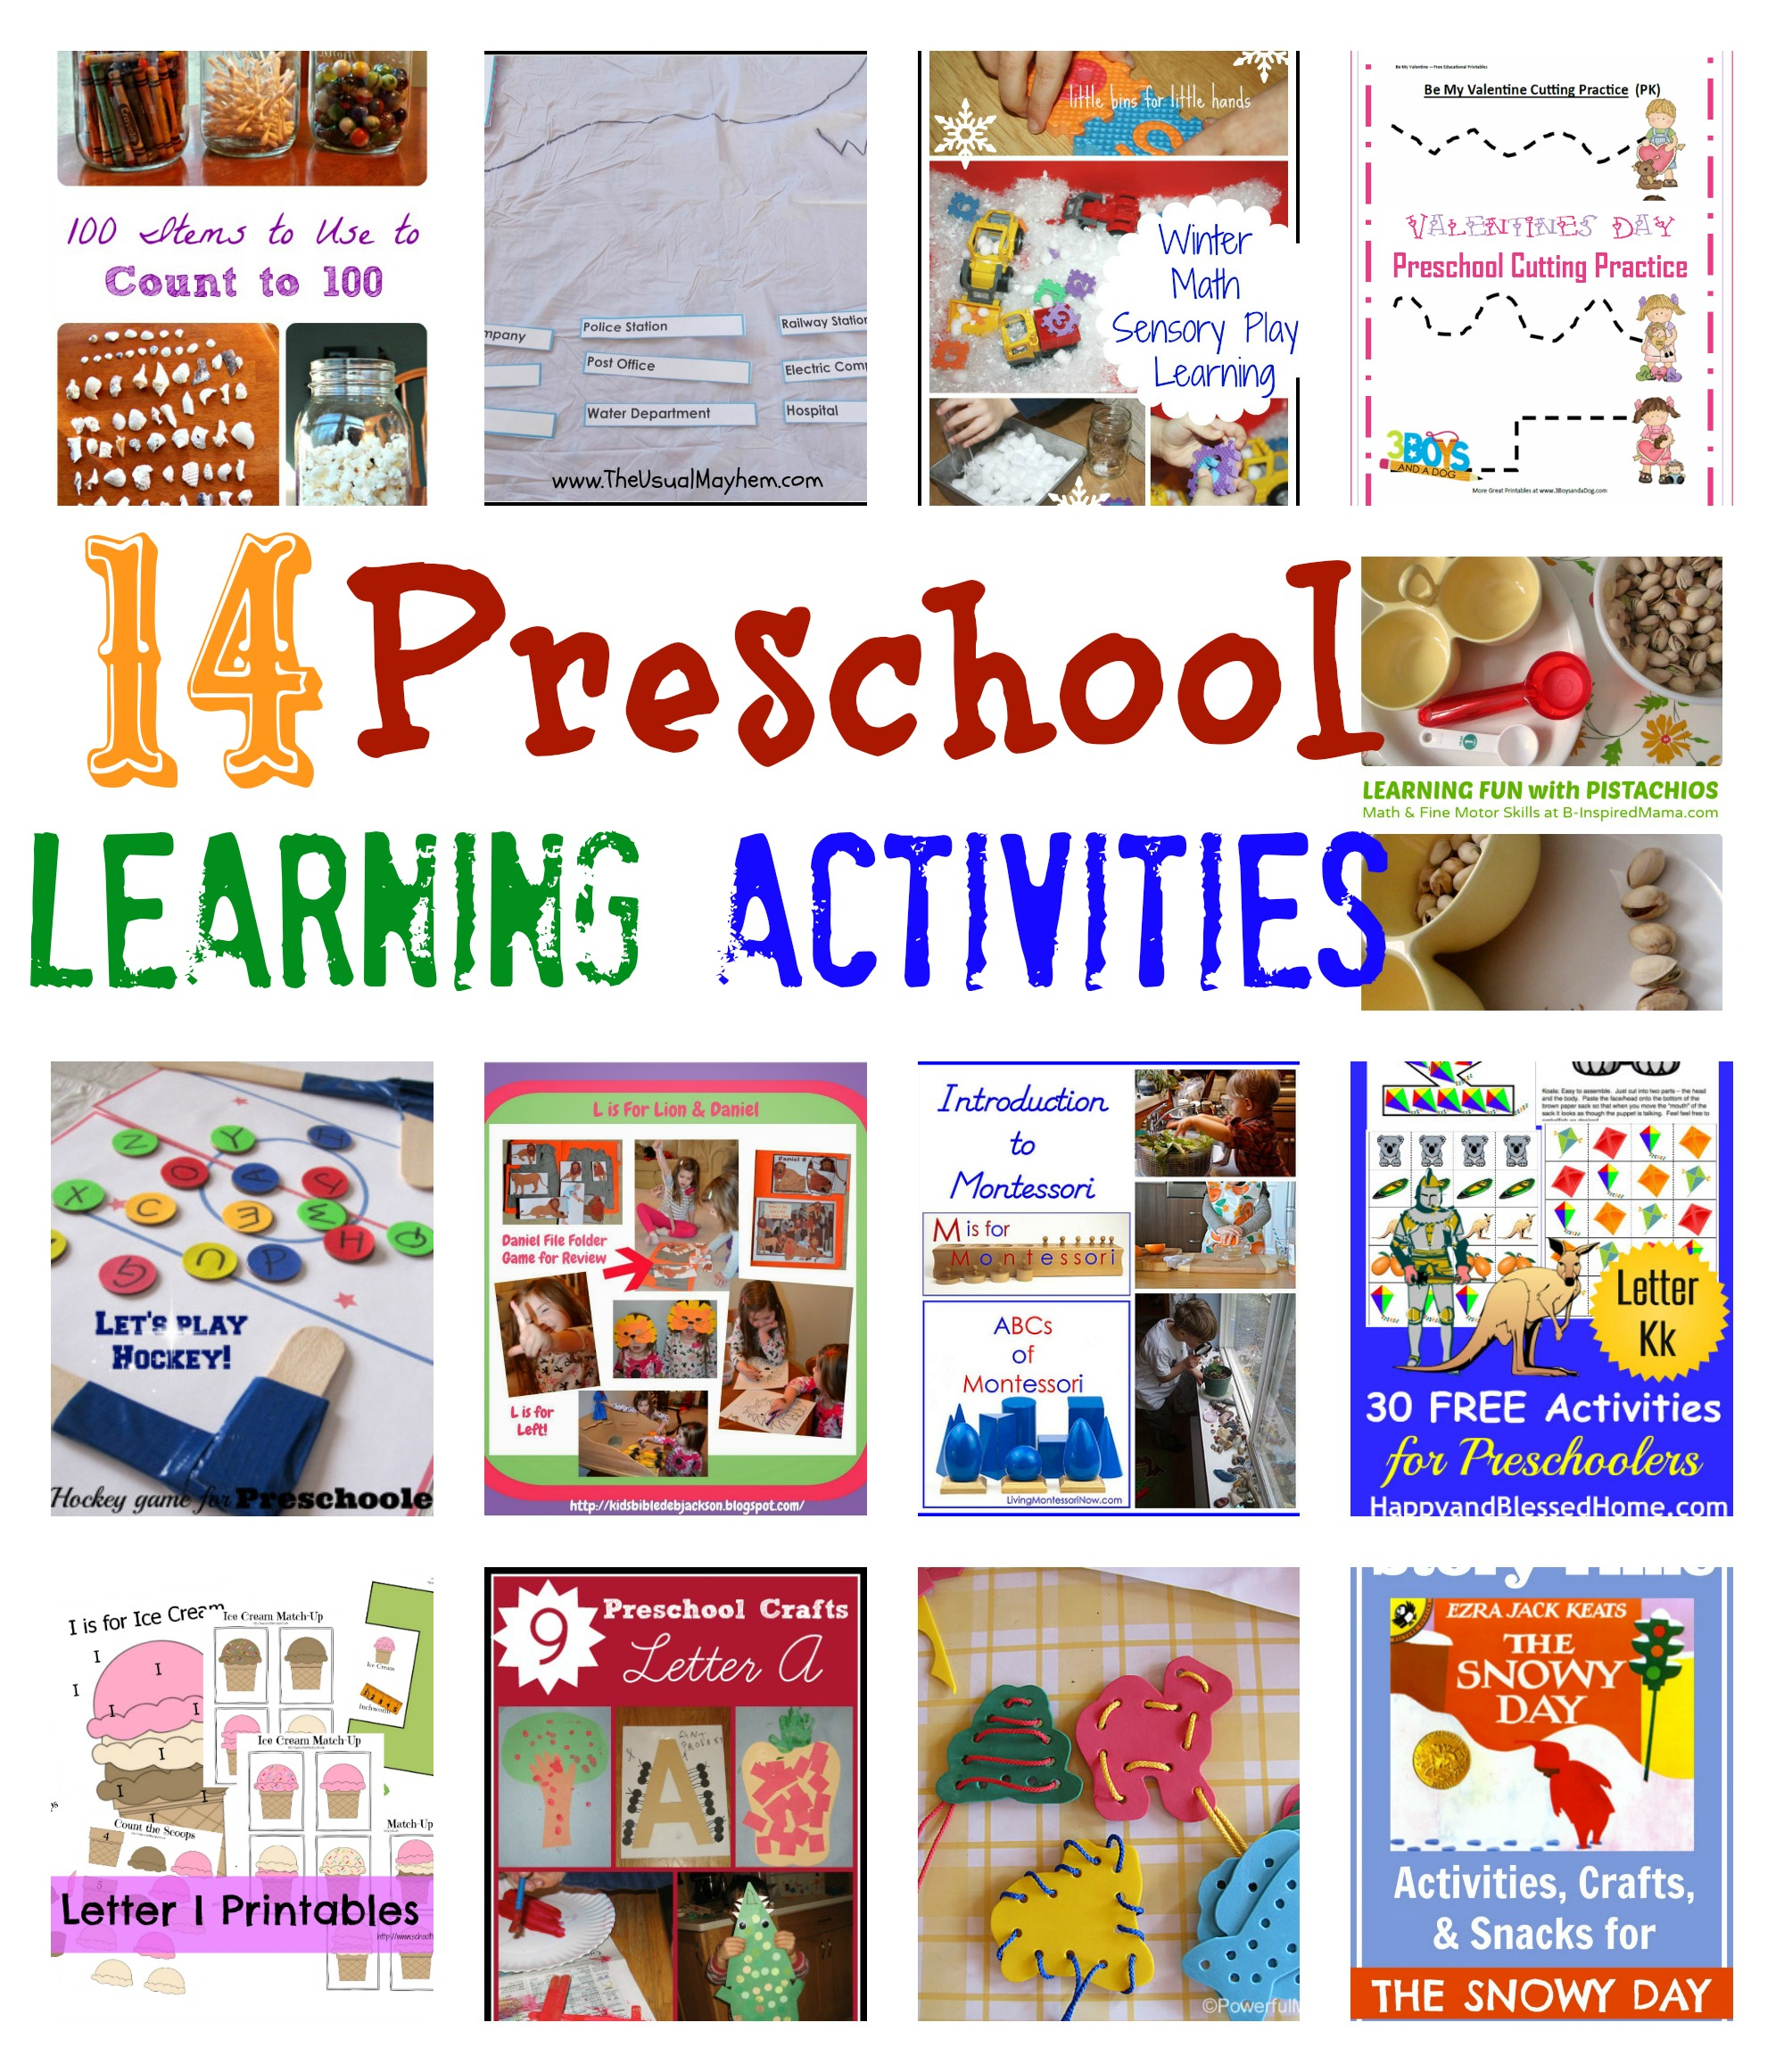 Preschool Learning Activities from Share It Saturday - Teach Beside Me